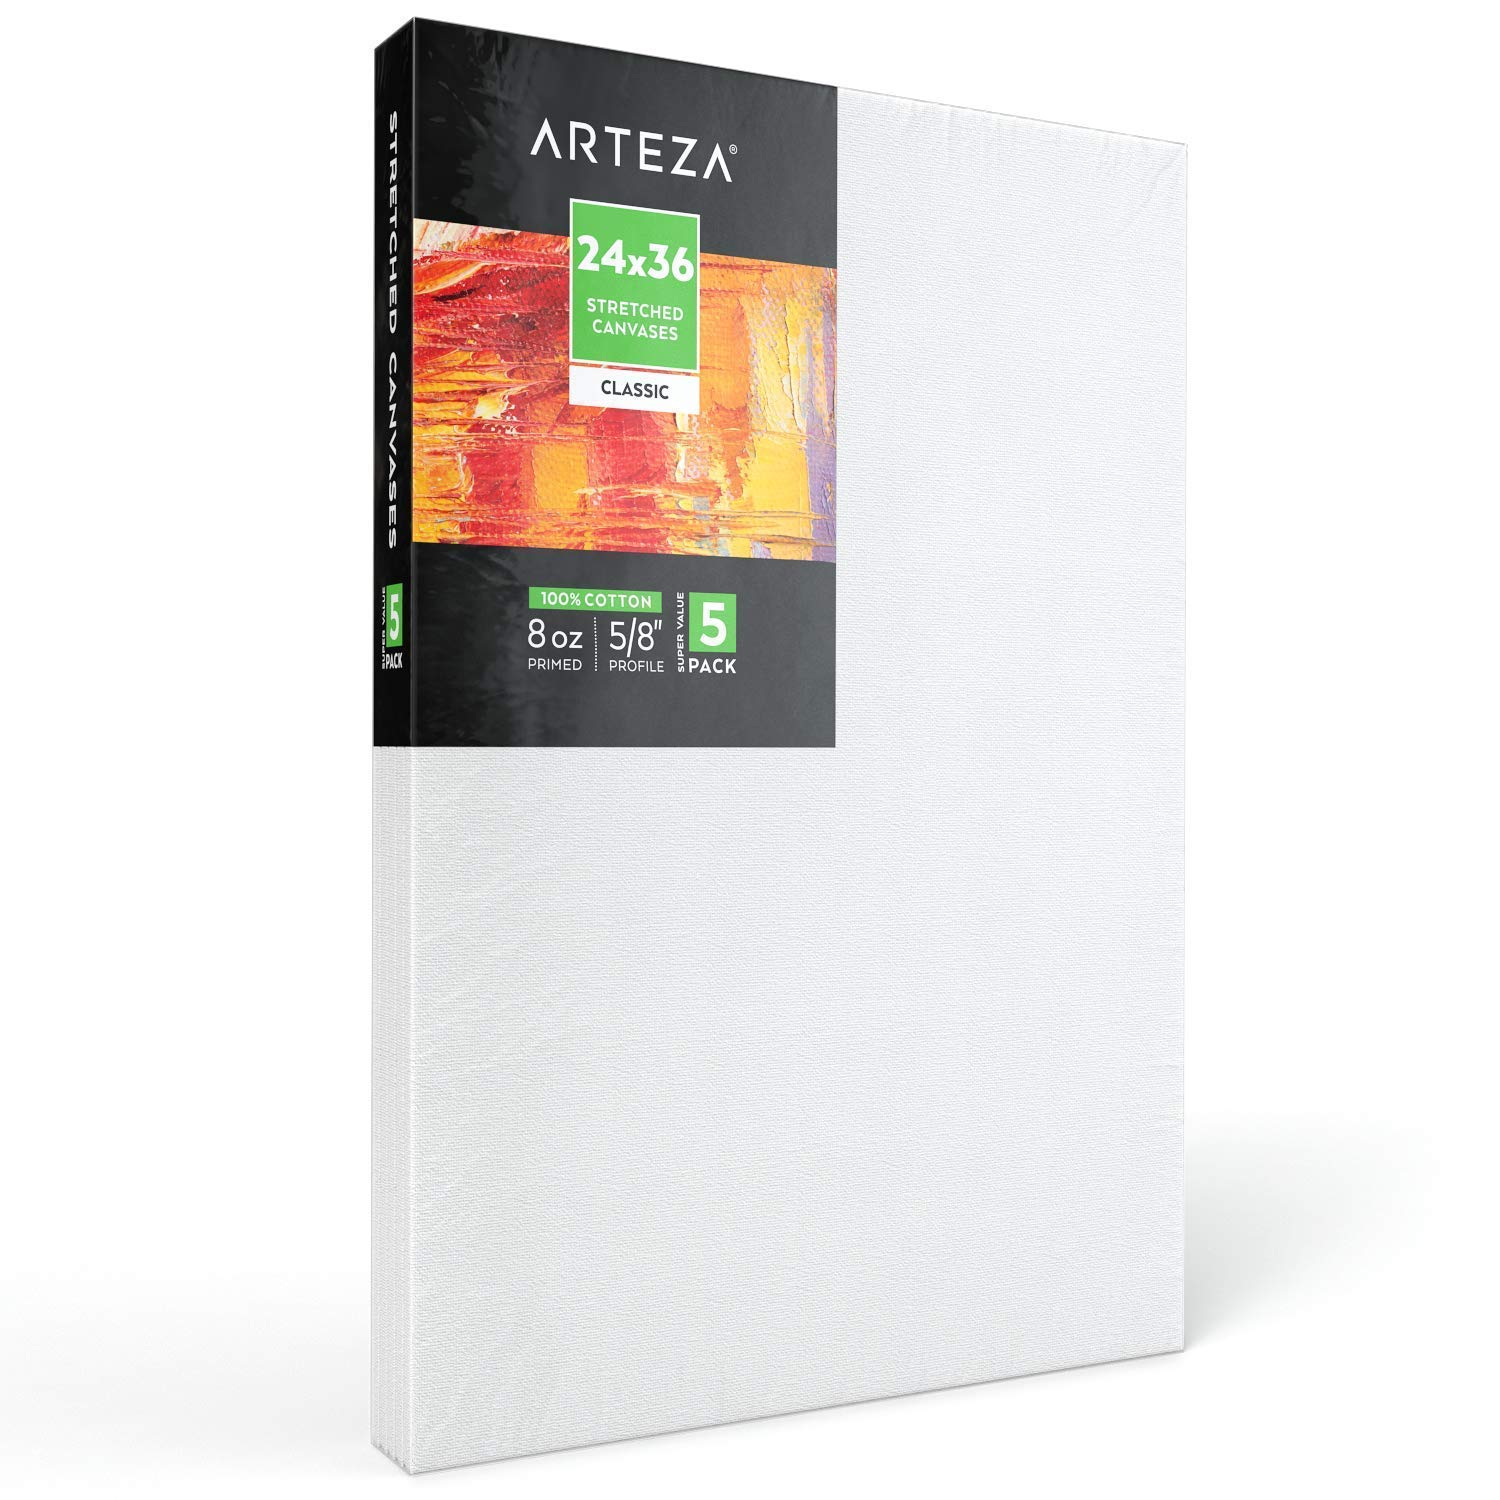 """Arteza 24x36"""" Stretched White Blank Canvas, Bulk Pack of 5, Primed, 100% Cotton for Painting, Acrylic Pouring, Oil Paint & Wet Art Media, Canvases for Professional Artist, Hobby Painters & Beginner by ARTEZA (Image #6)"""